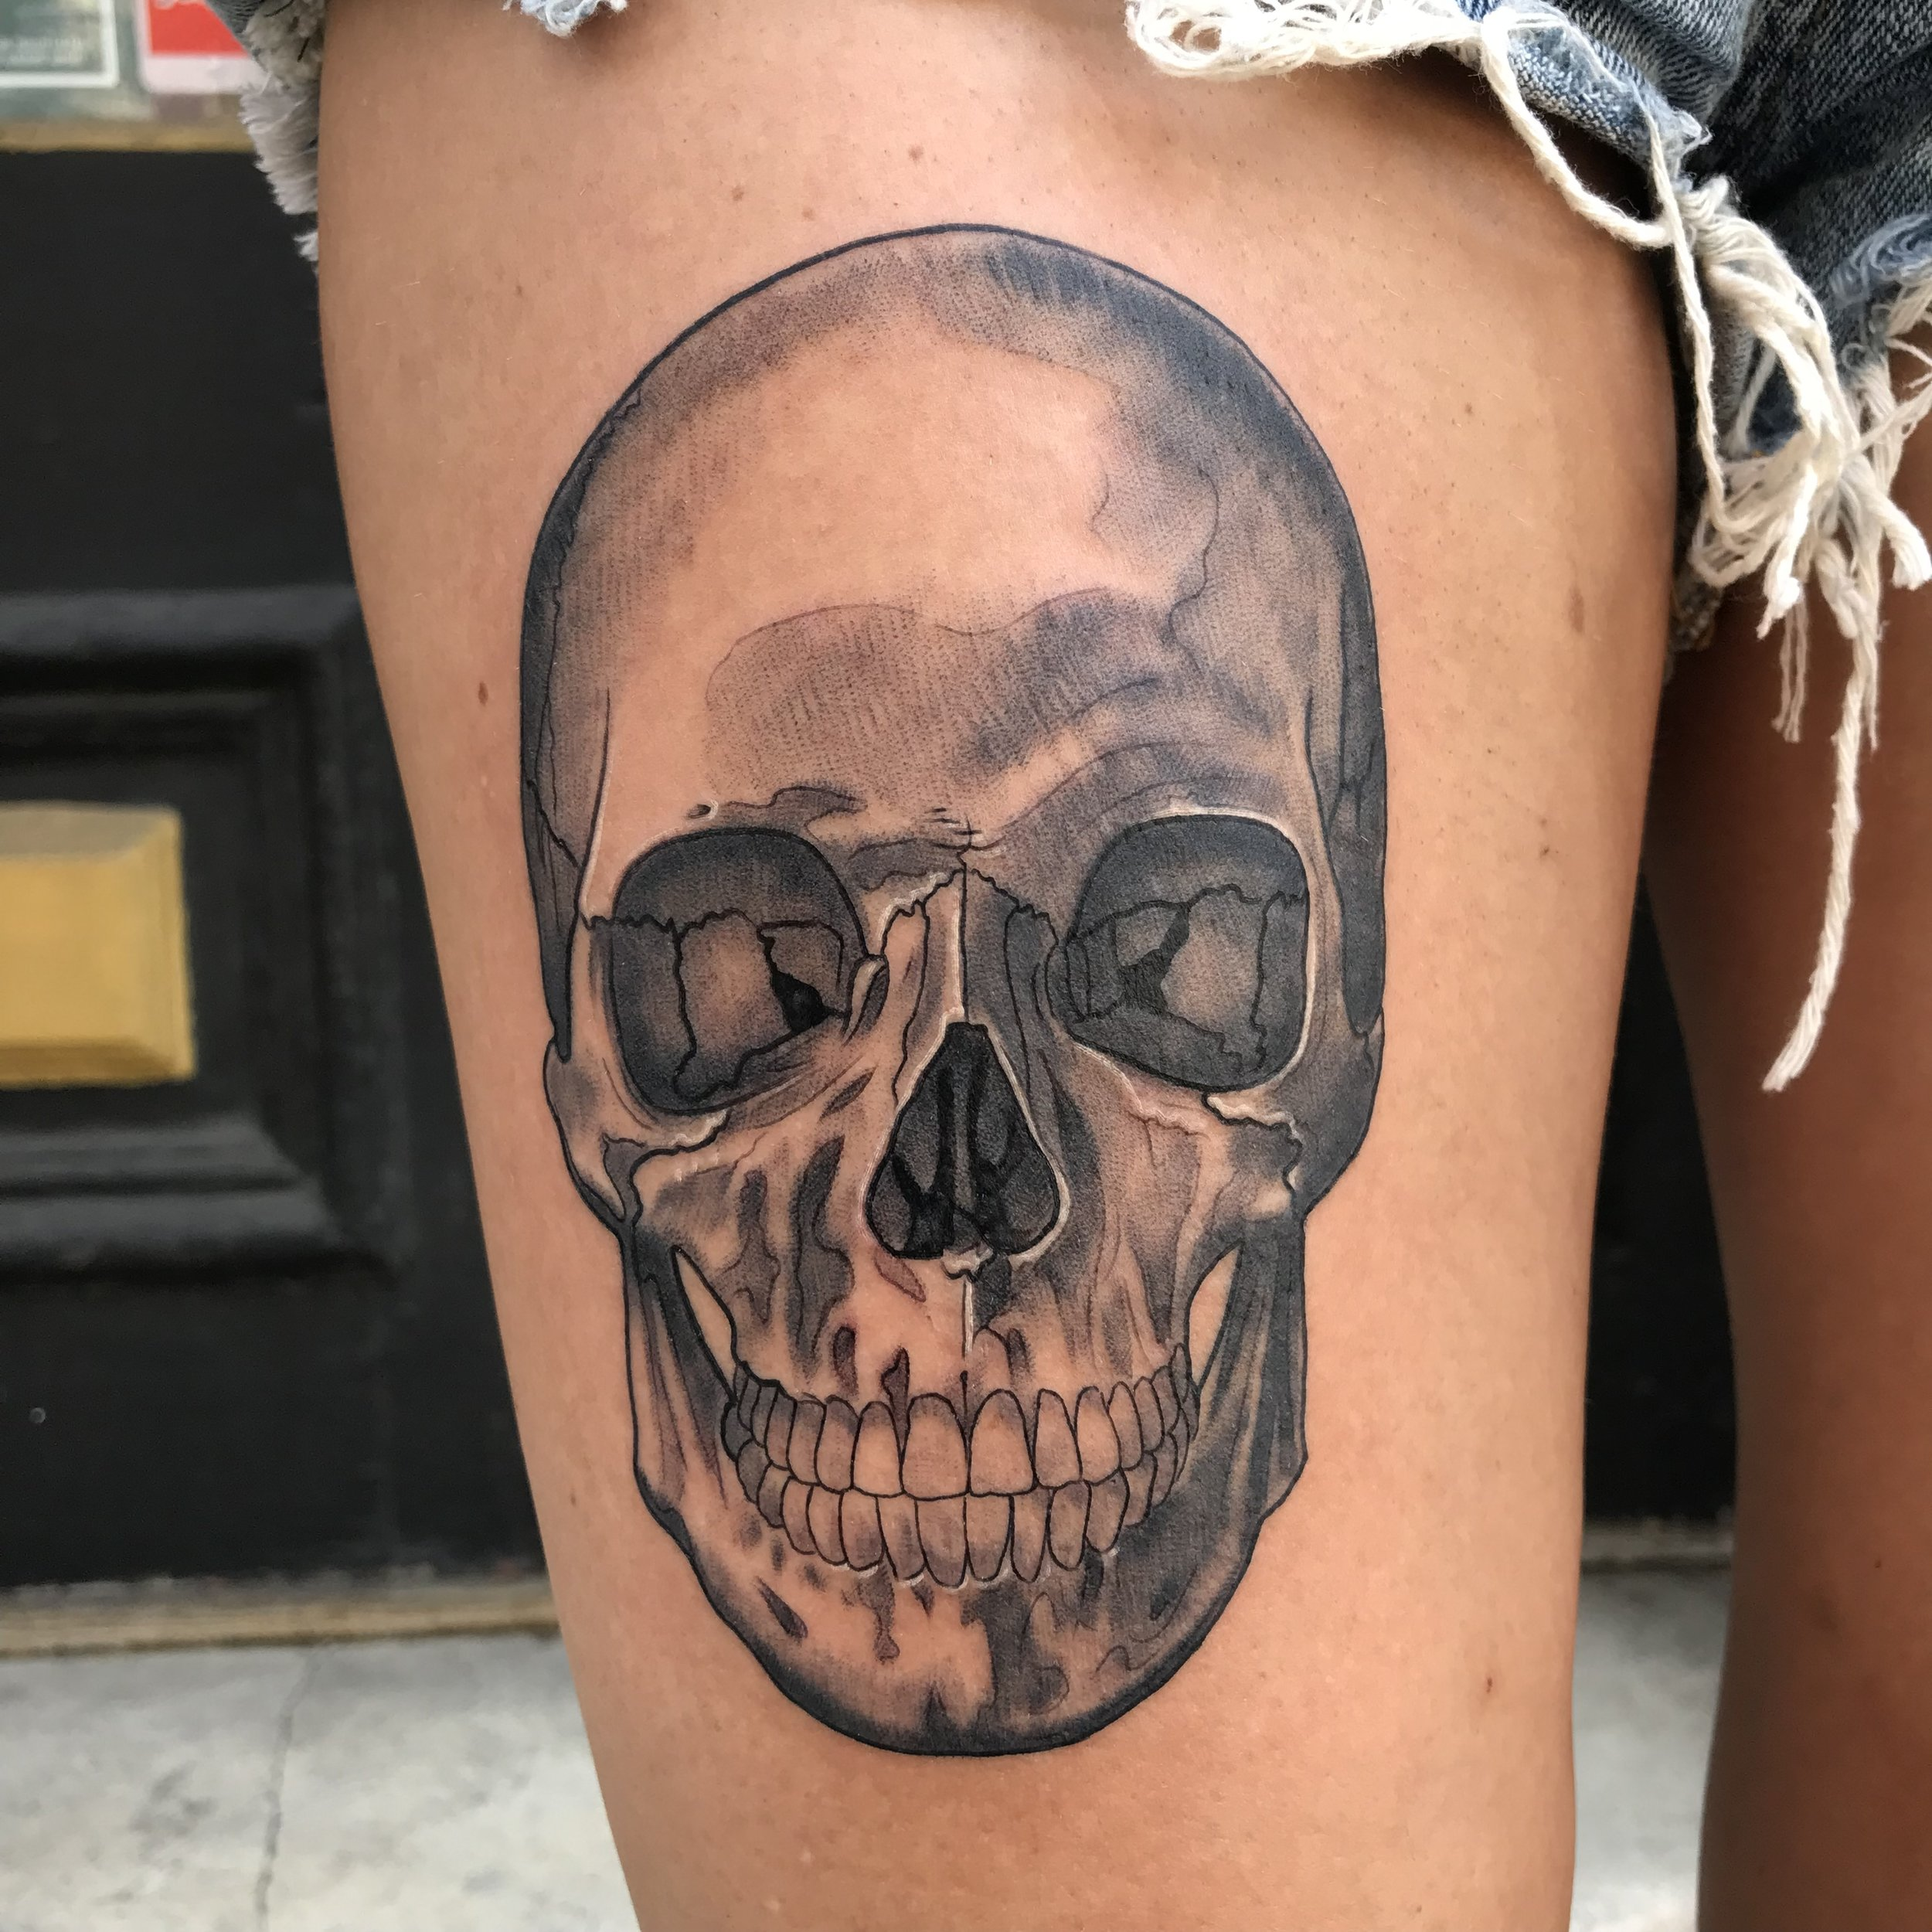 bg skull anatomical realistic Turkus July 2019.jpg